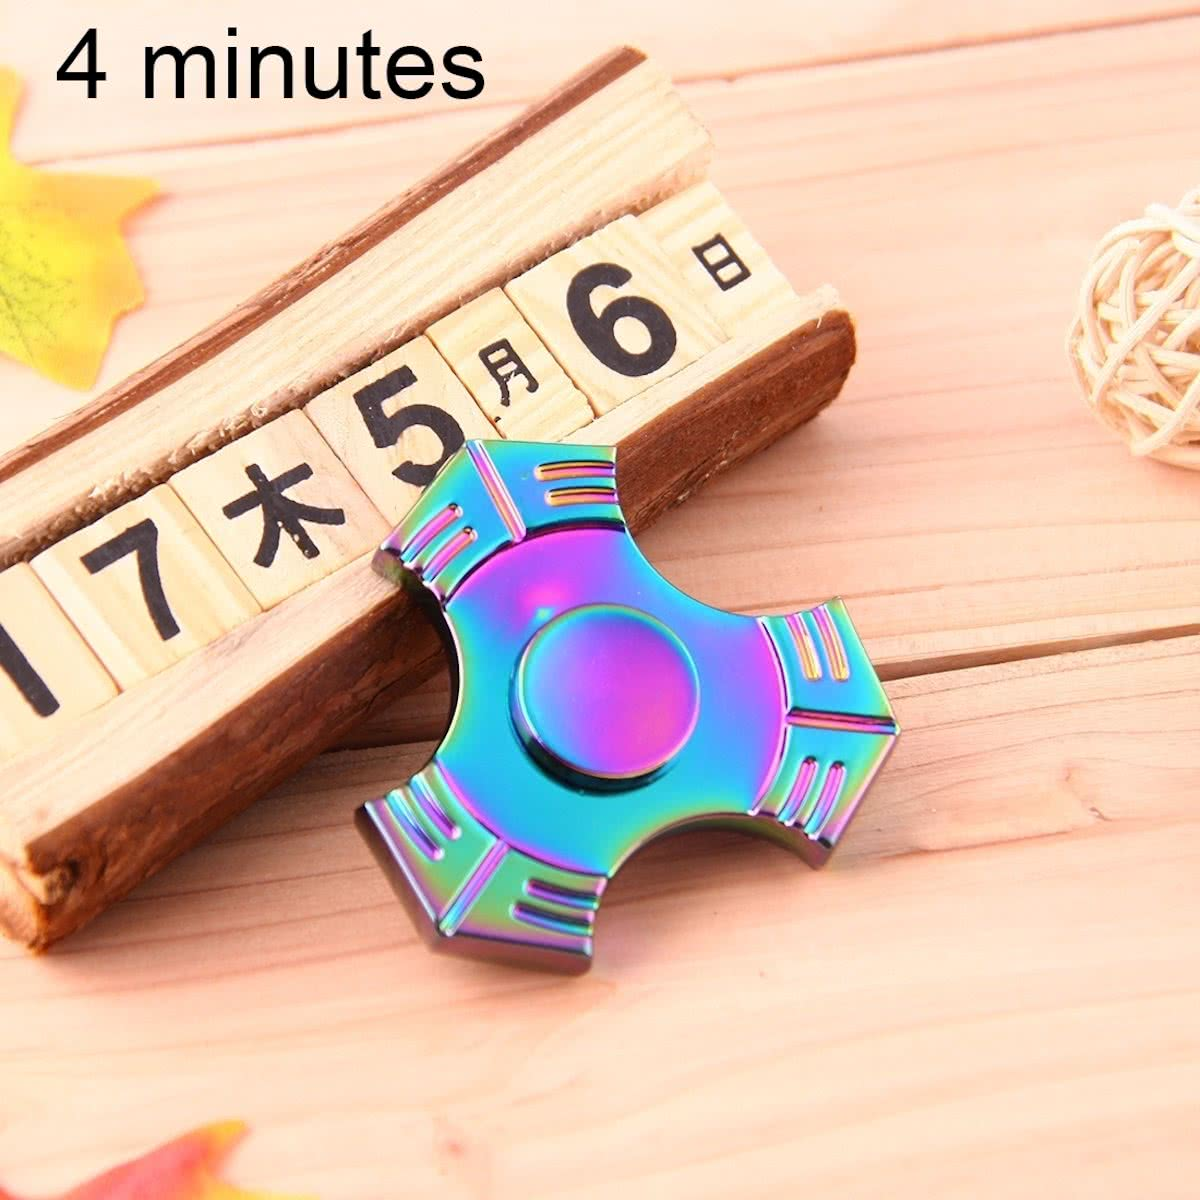 T7   Spinner Toy Stress rooducer Anti-Anxiety Toy voor Children en Adults, 4 Minutes Rotation Time,  Steel Beads Bearing + Zinc Alloy materiaal, Colorful Three Leaves